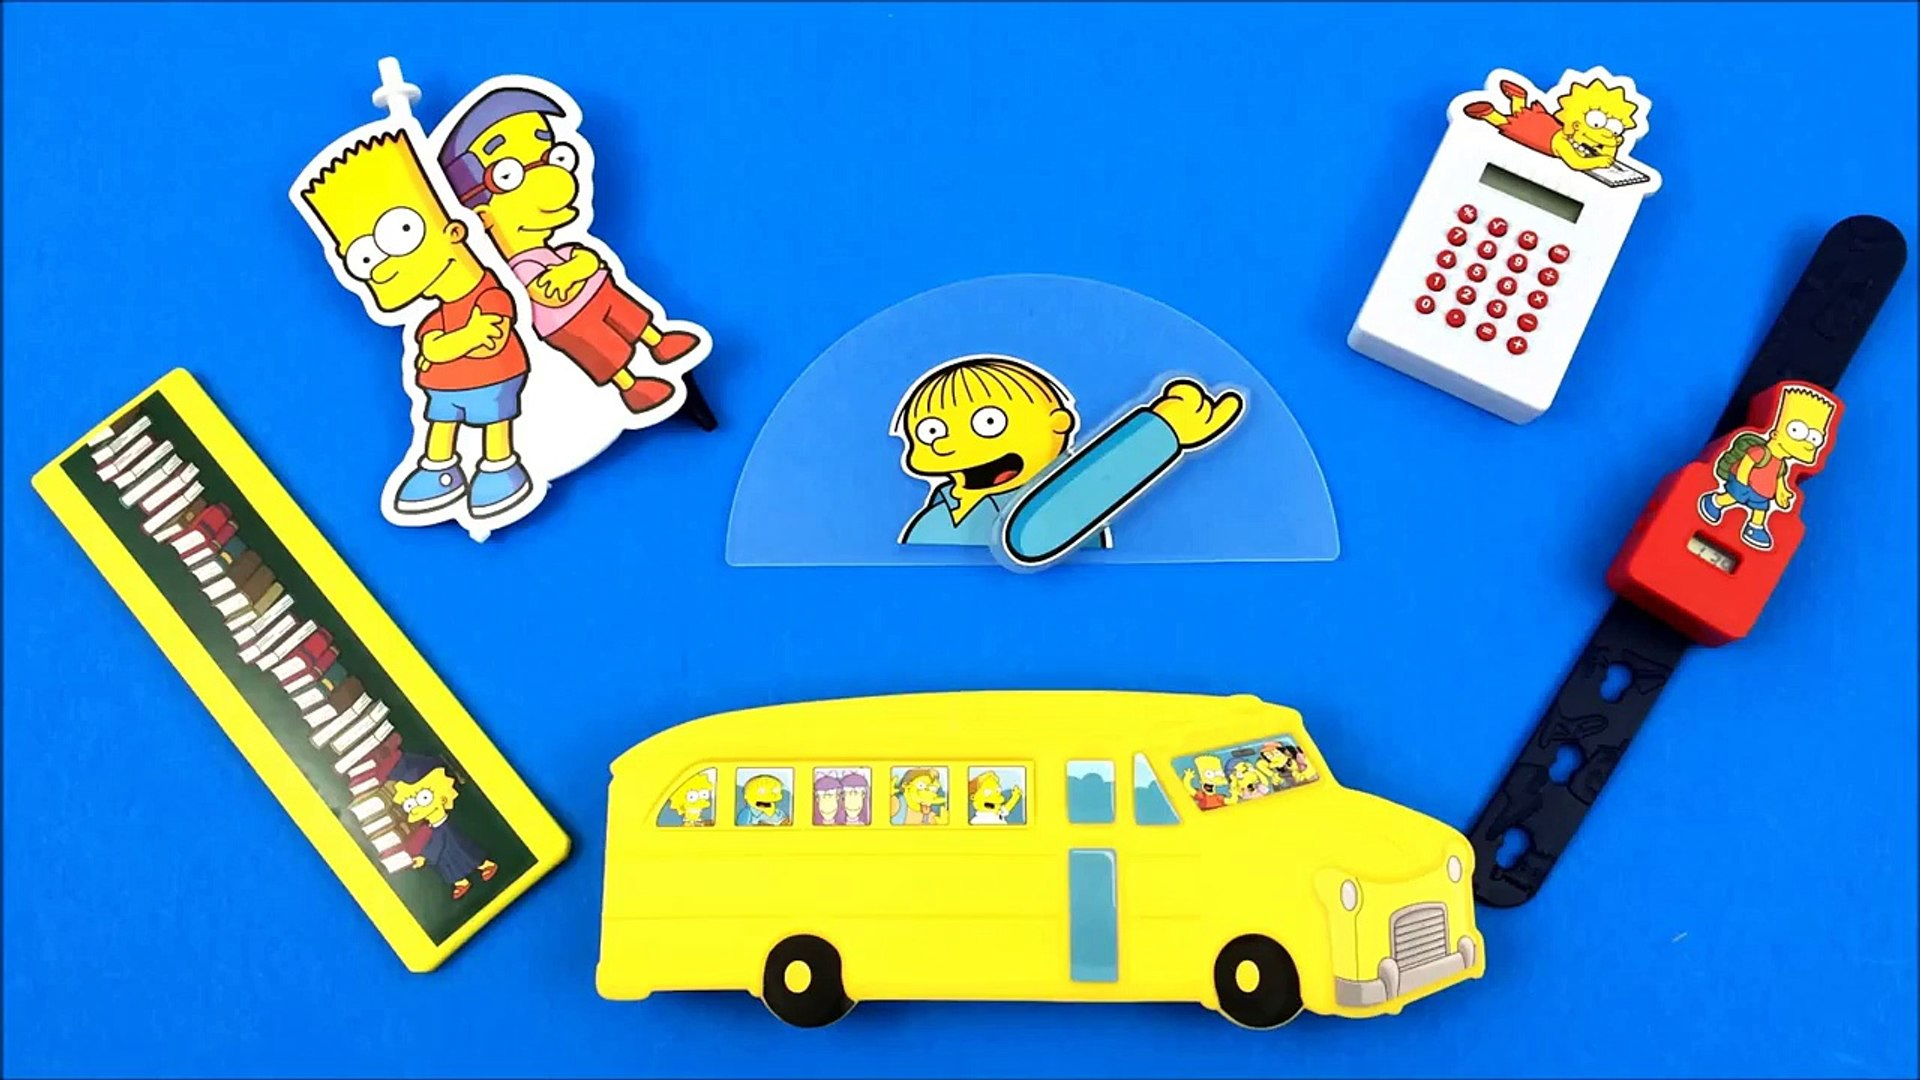 Ottos School Bus Pencil Case 2015 Burger King Simpsons Back To School Toy 4 Set 6 Kids Meal Toys Dailymotion Video